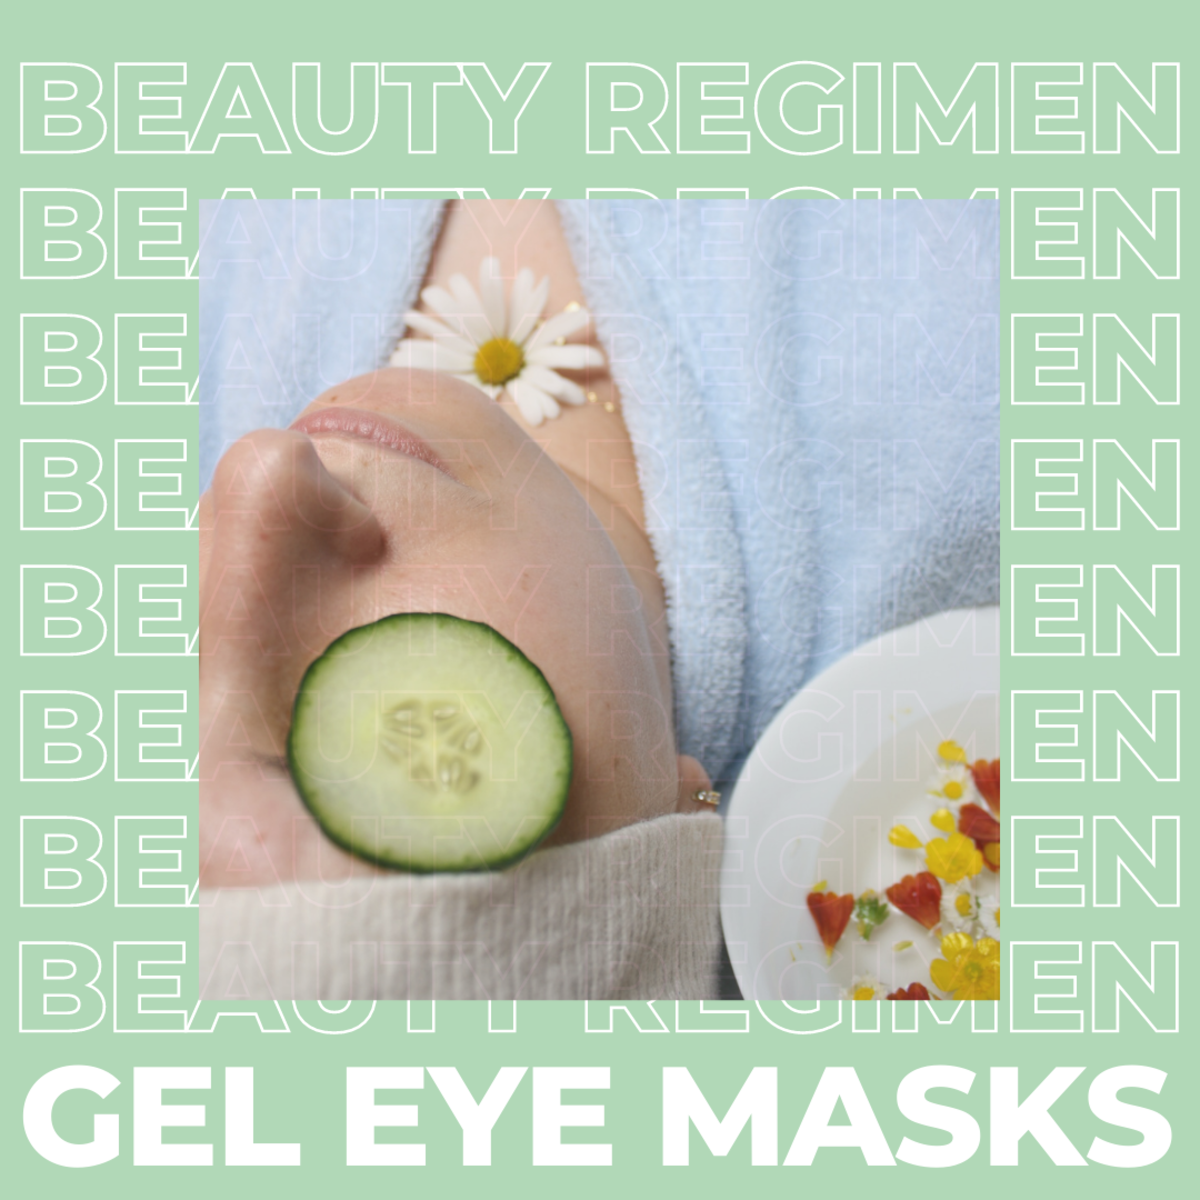 Adding an Eye Mask to Your Beauty Regimen